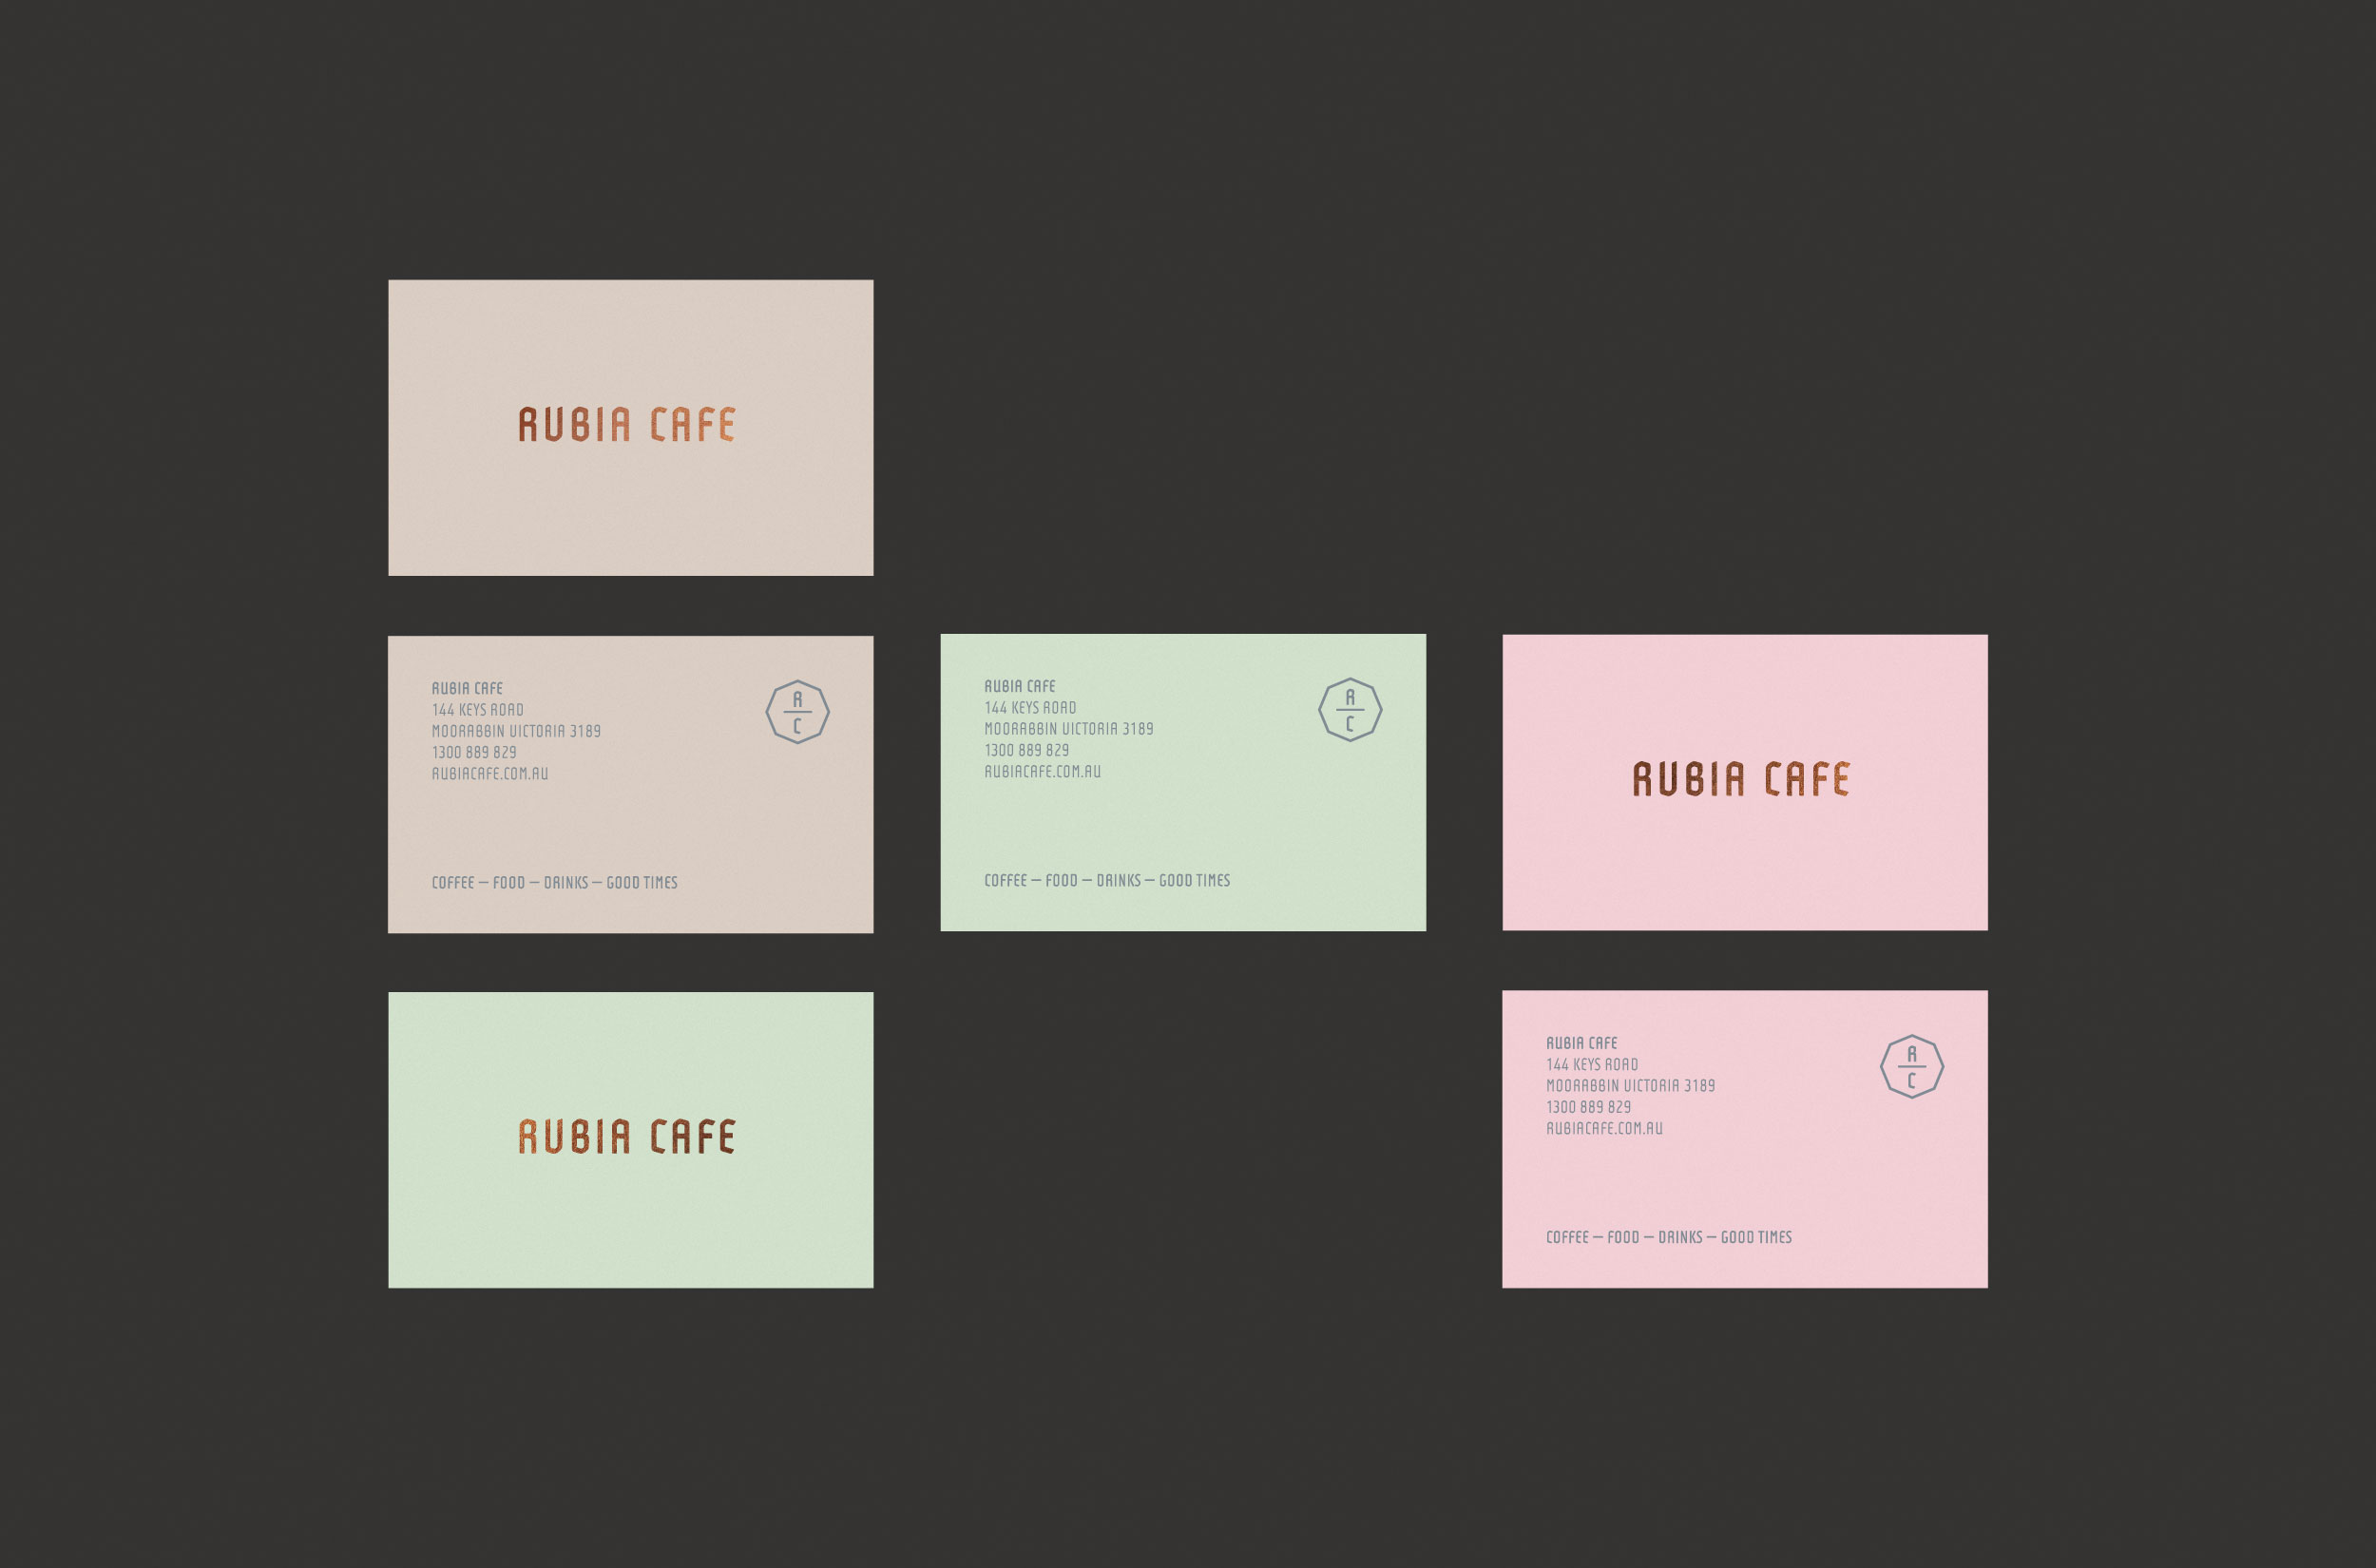 Rubia Cafe Business Cards